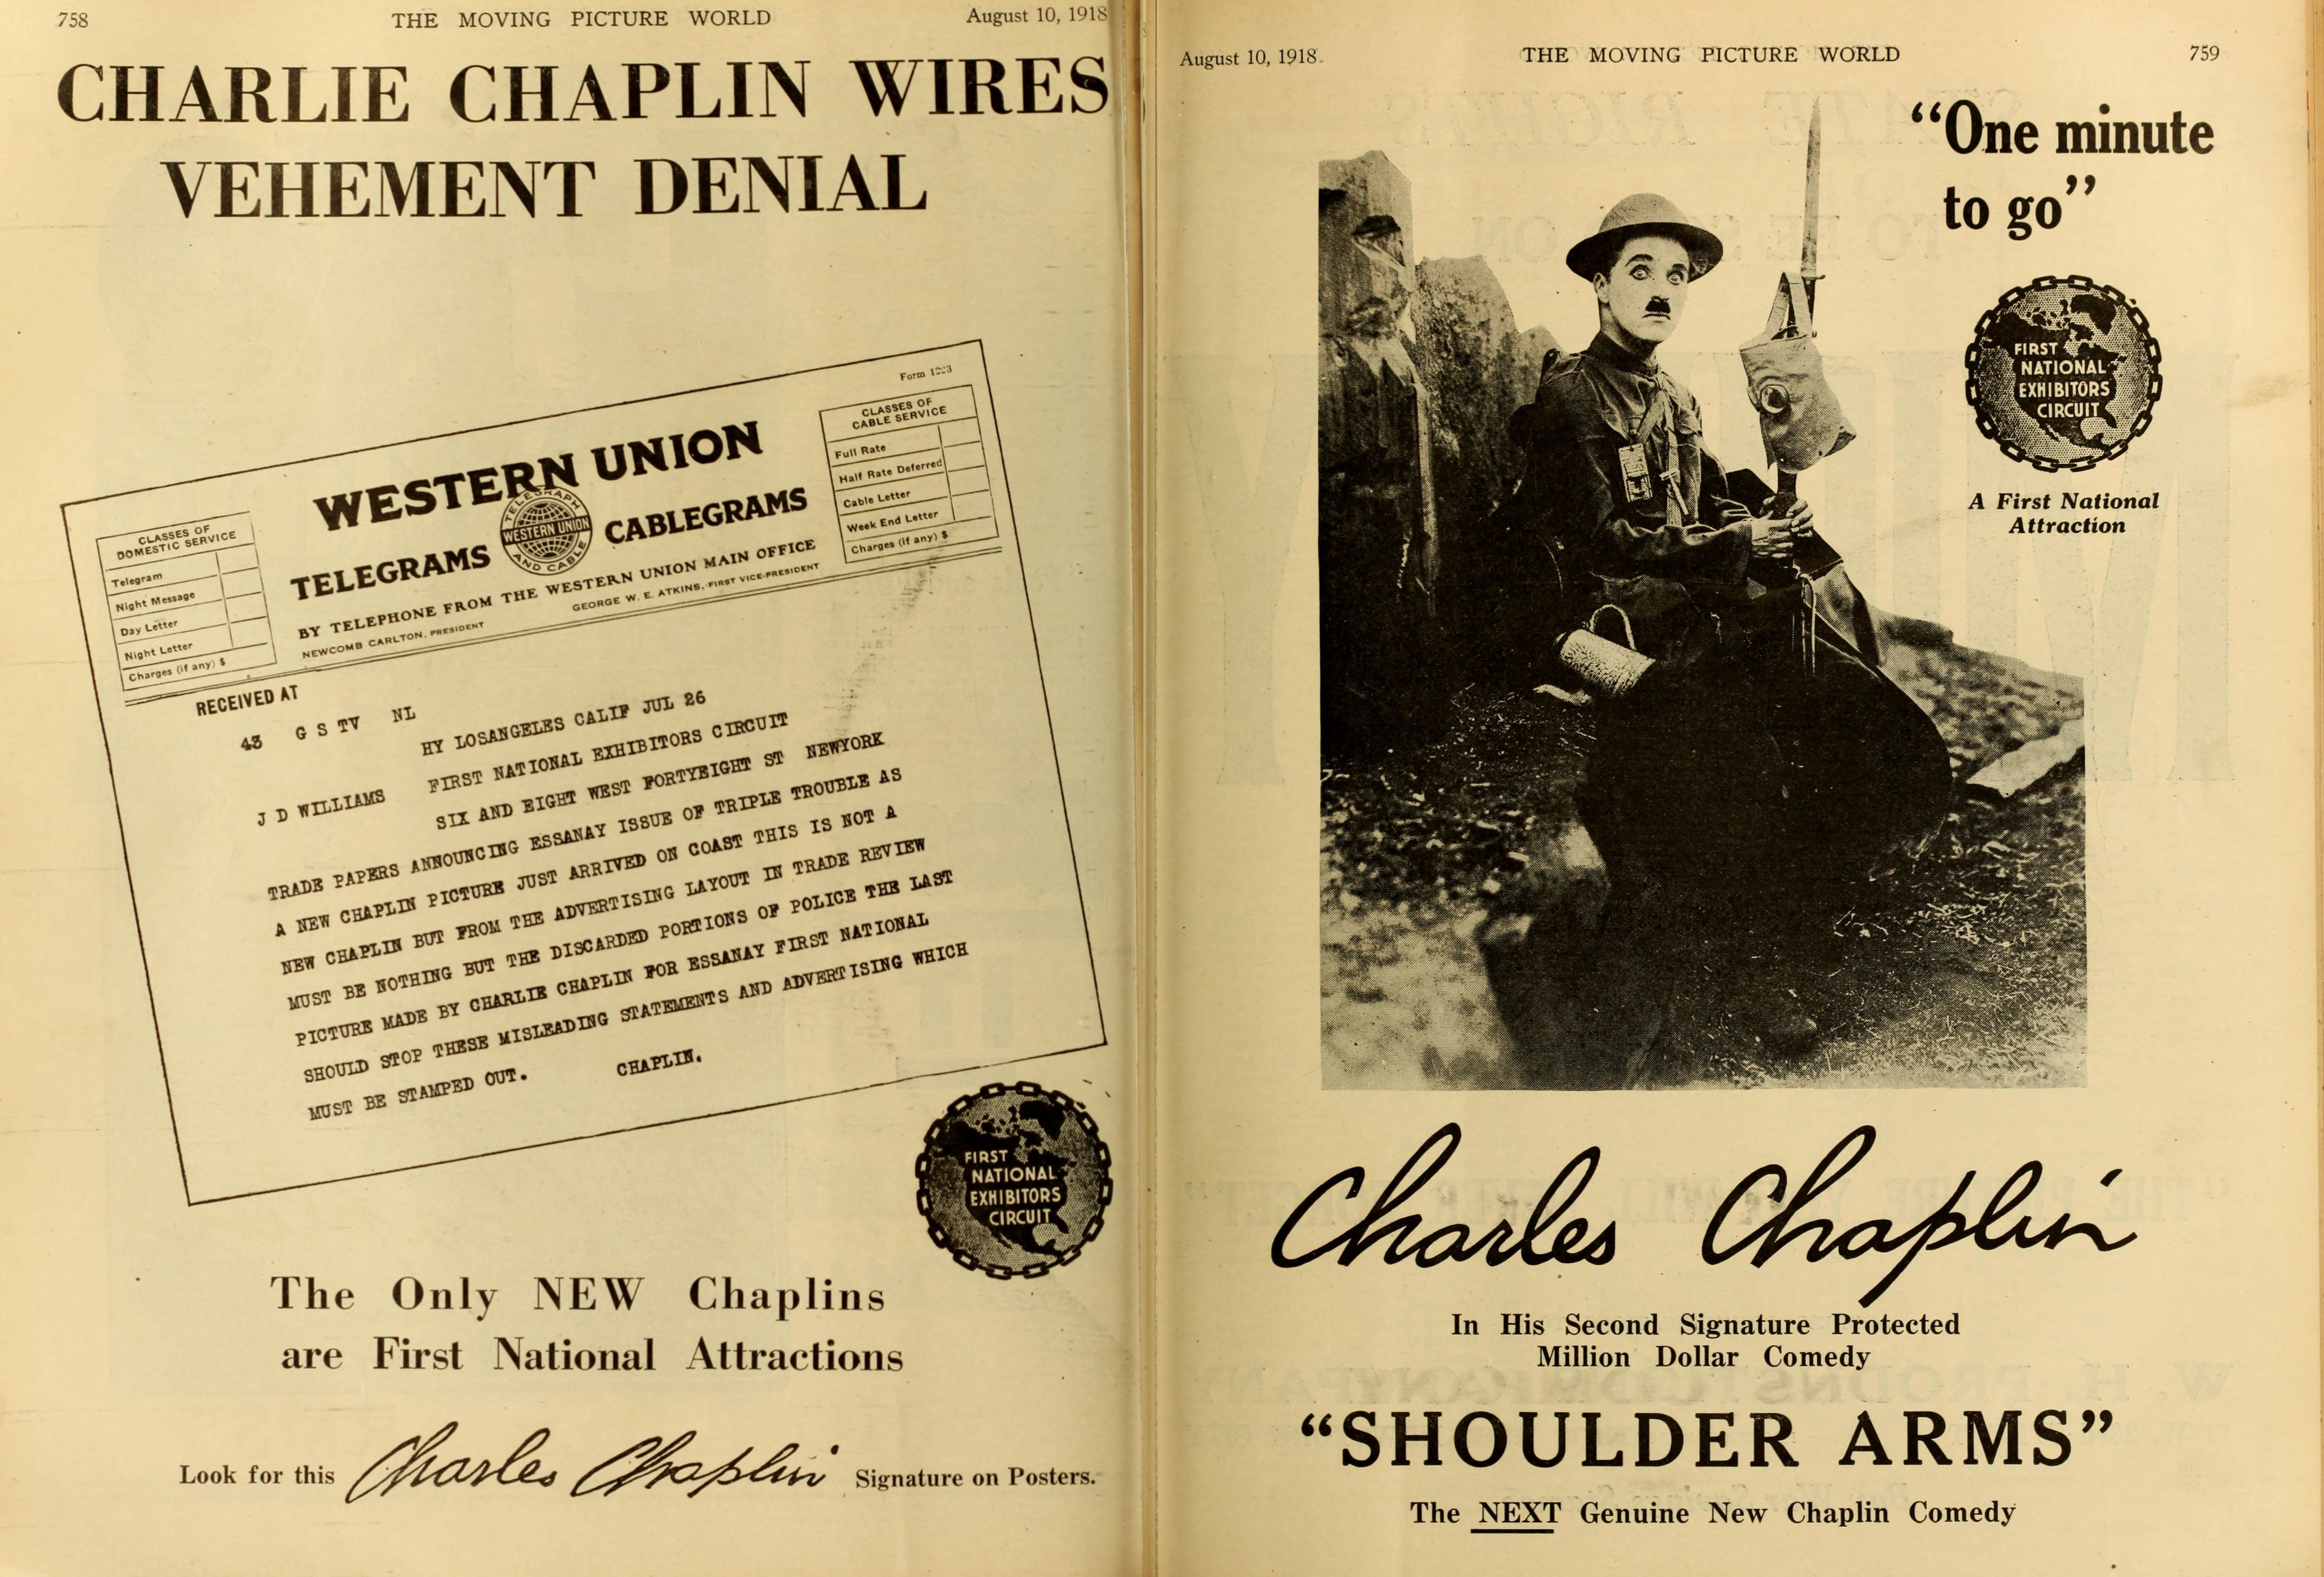 Charlie Chaplin Triple Trouble protest telegram and Shoulder Arms advert, Moving Picture World magazine, August 10, 1918, p.758-759